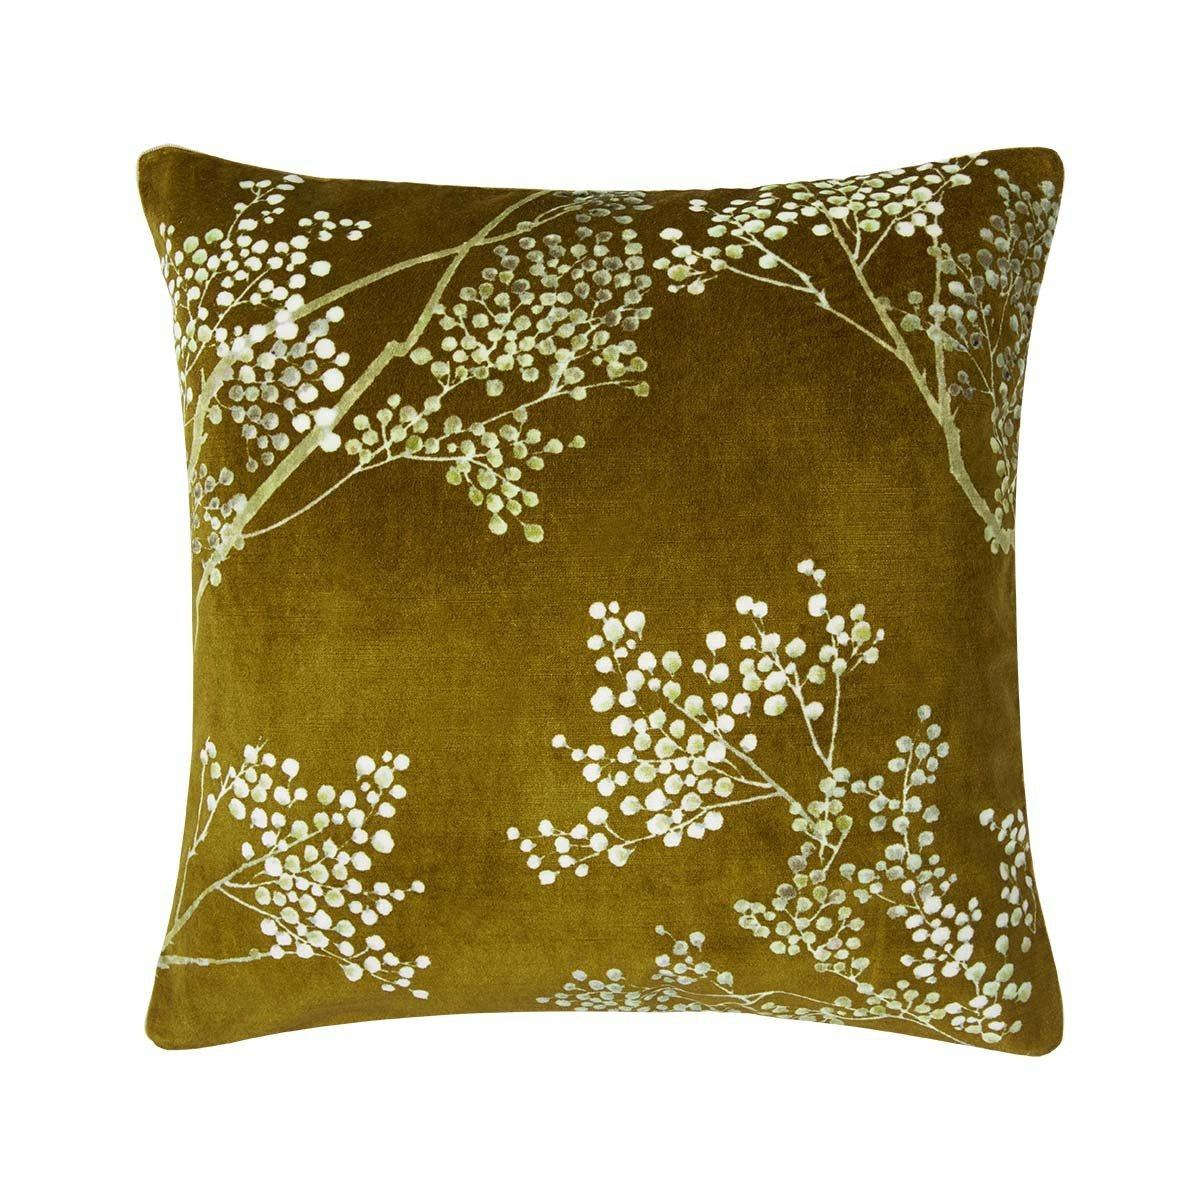 Sous La Lune Or Decorative Pillow by Iosis